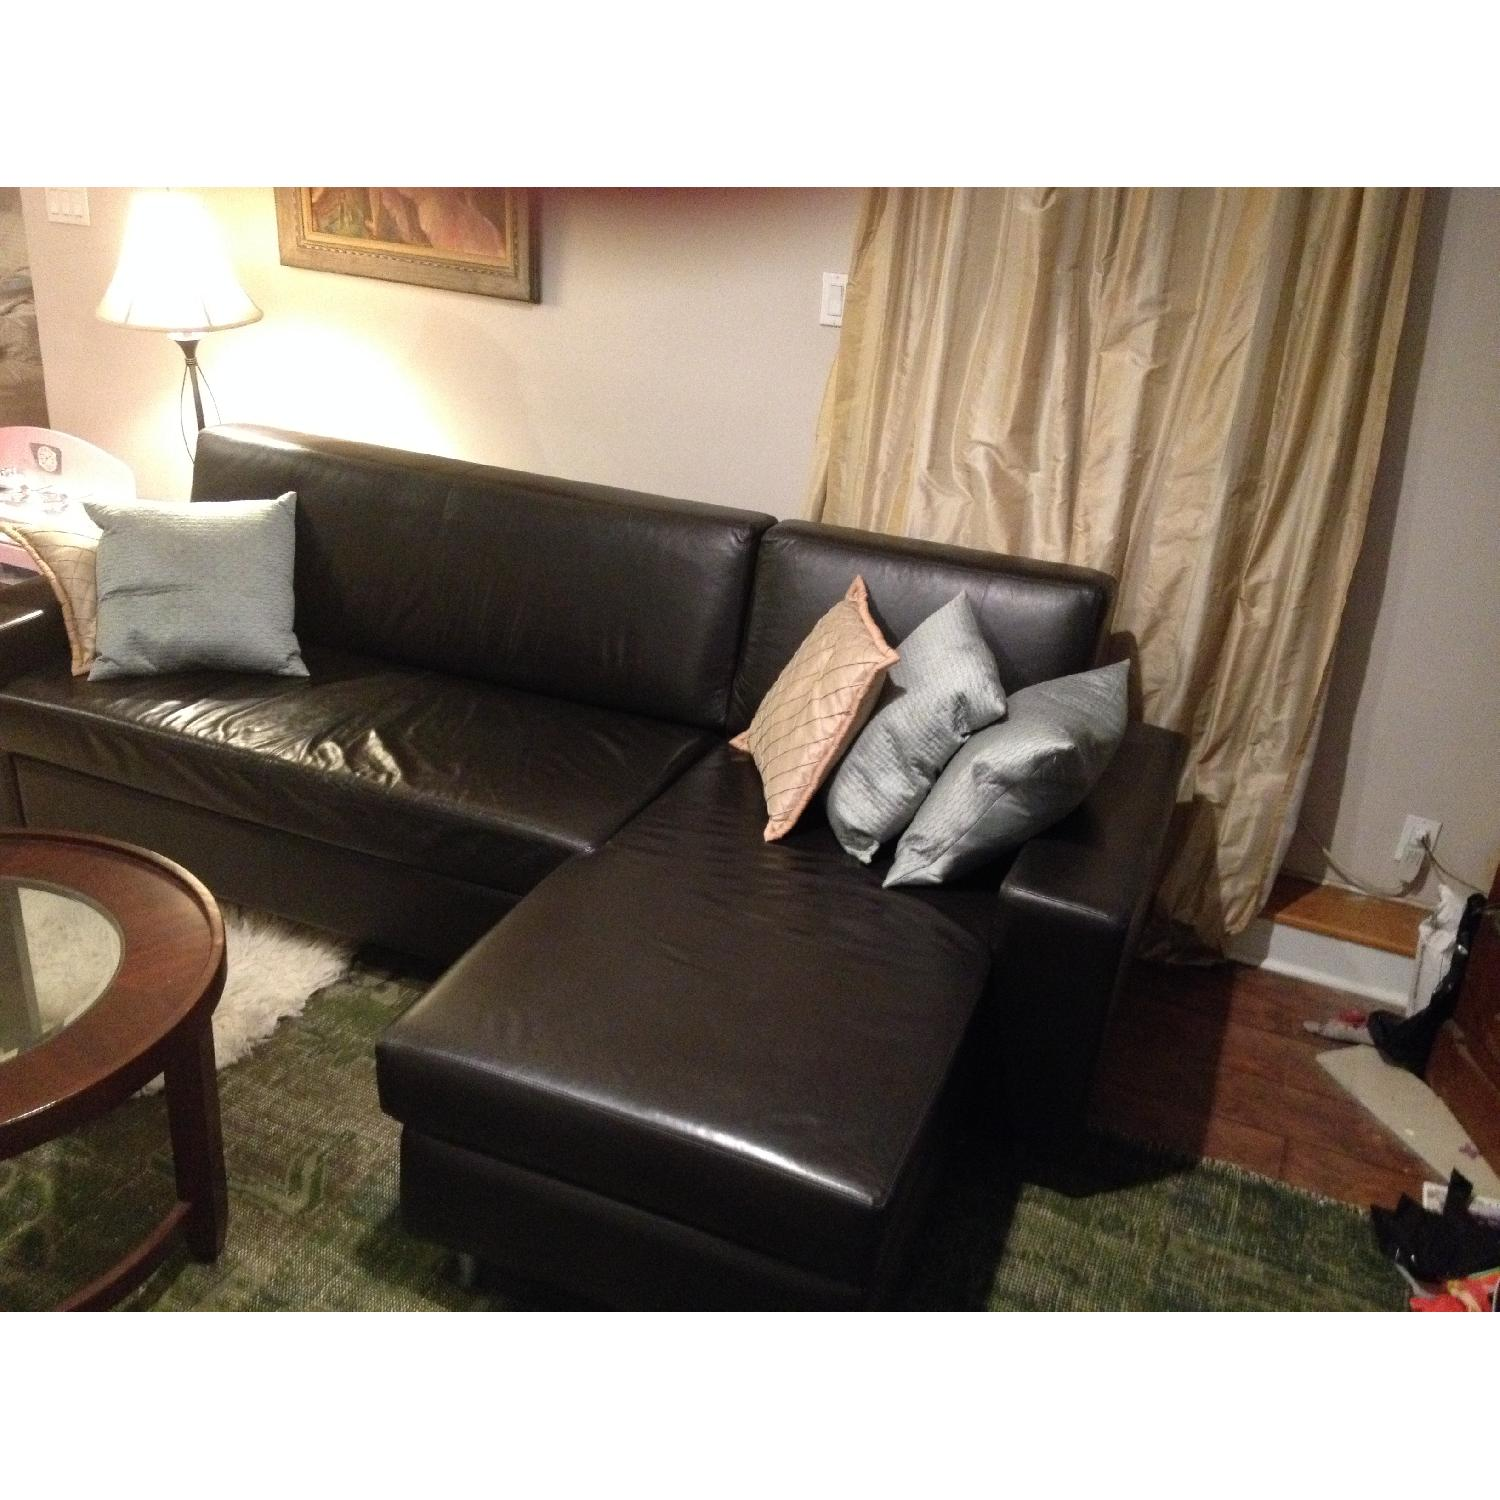 MDC Furniture Espresso L-Shape Leather Pull-Out Couch - image-5